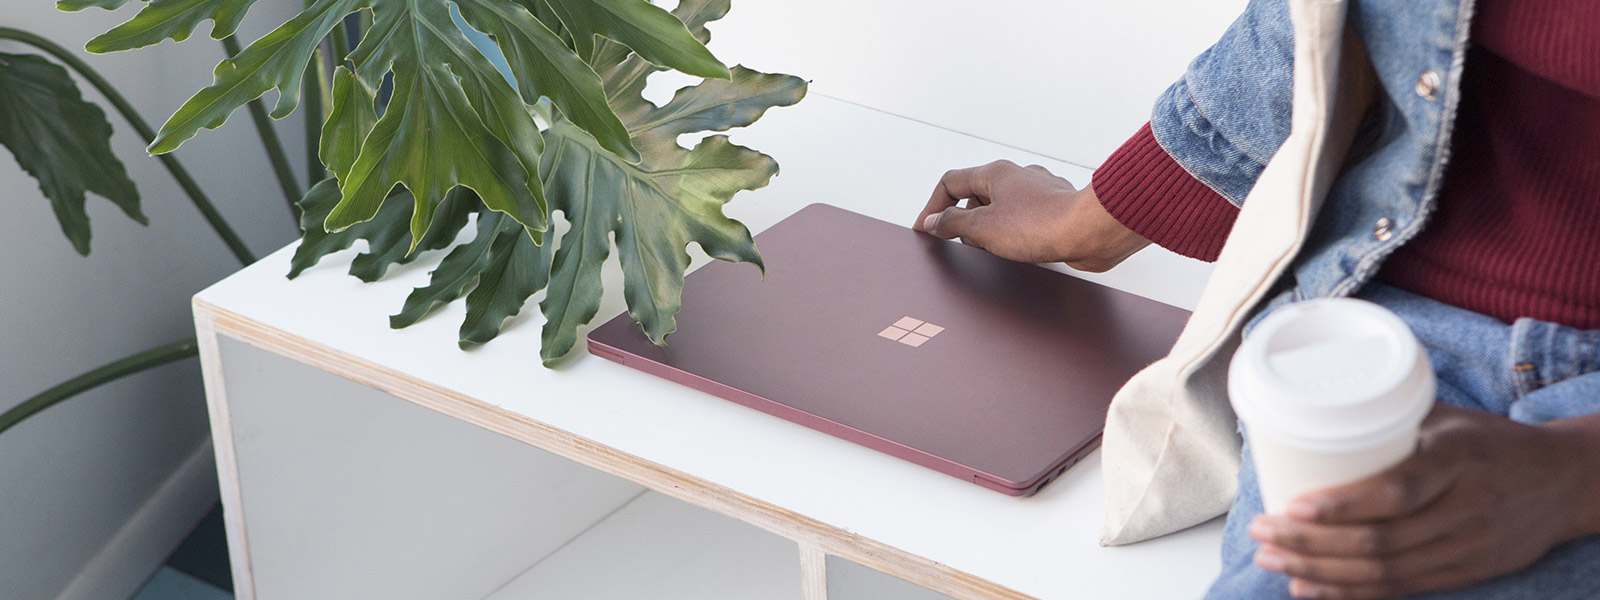 Image of person working on Surface Laptop in the sun at the beach.